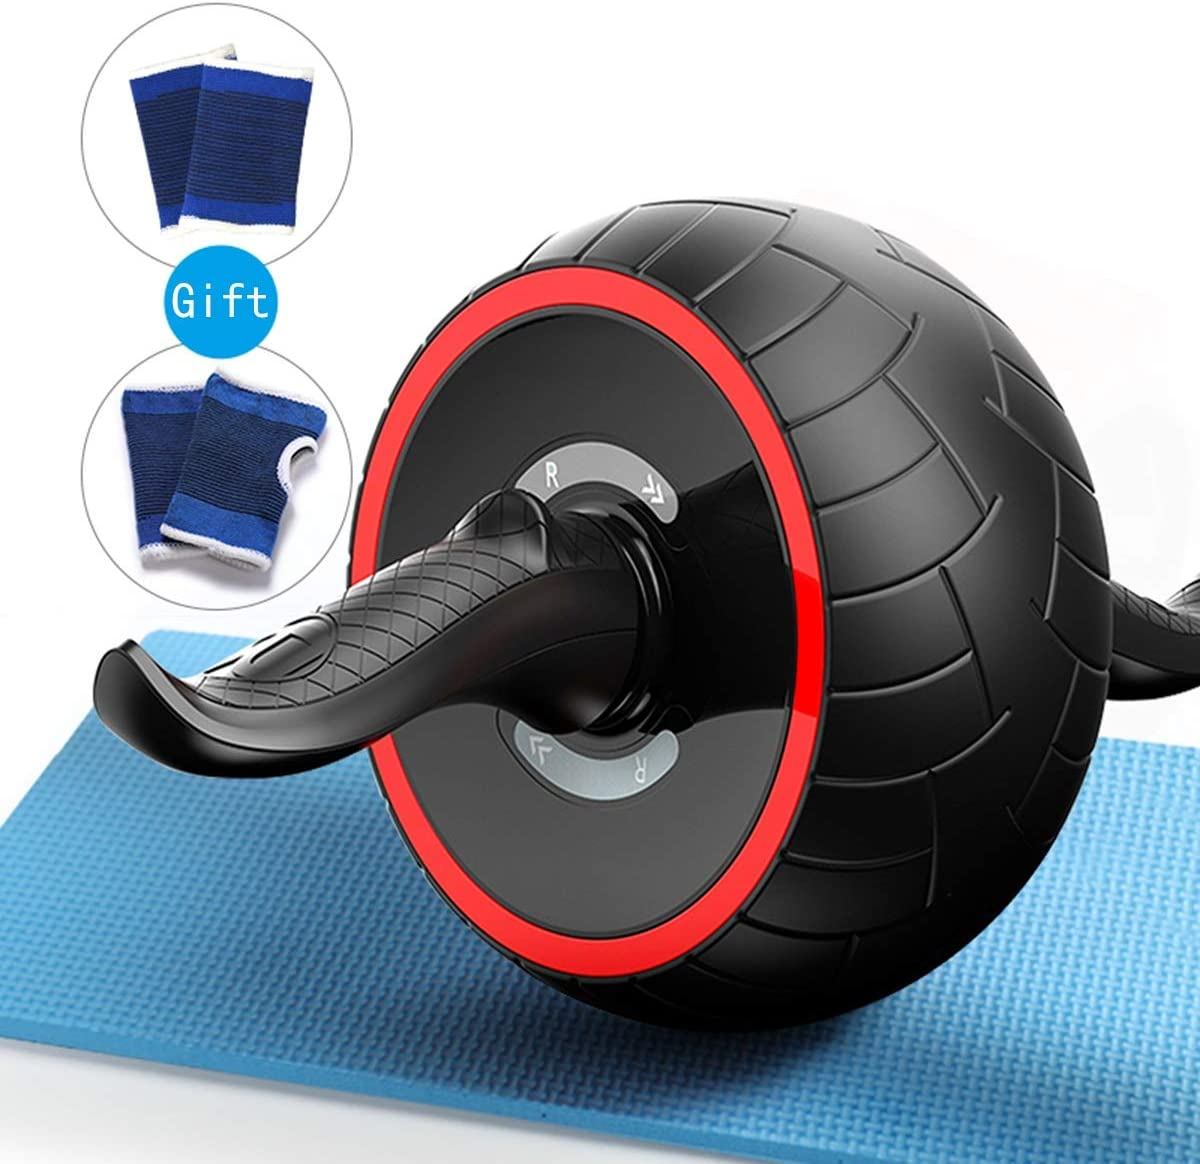 HongTeng-Abdominal Wheel Abdominal Muscle Tightening Wheels 67% latest OFF of fixed price Wais